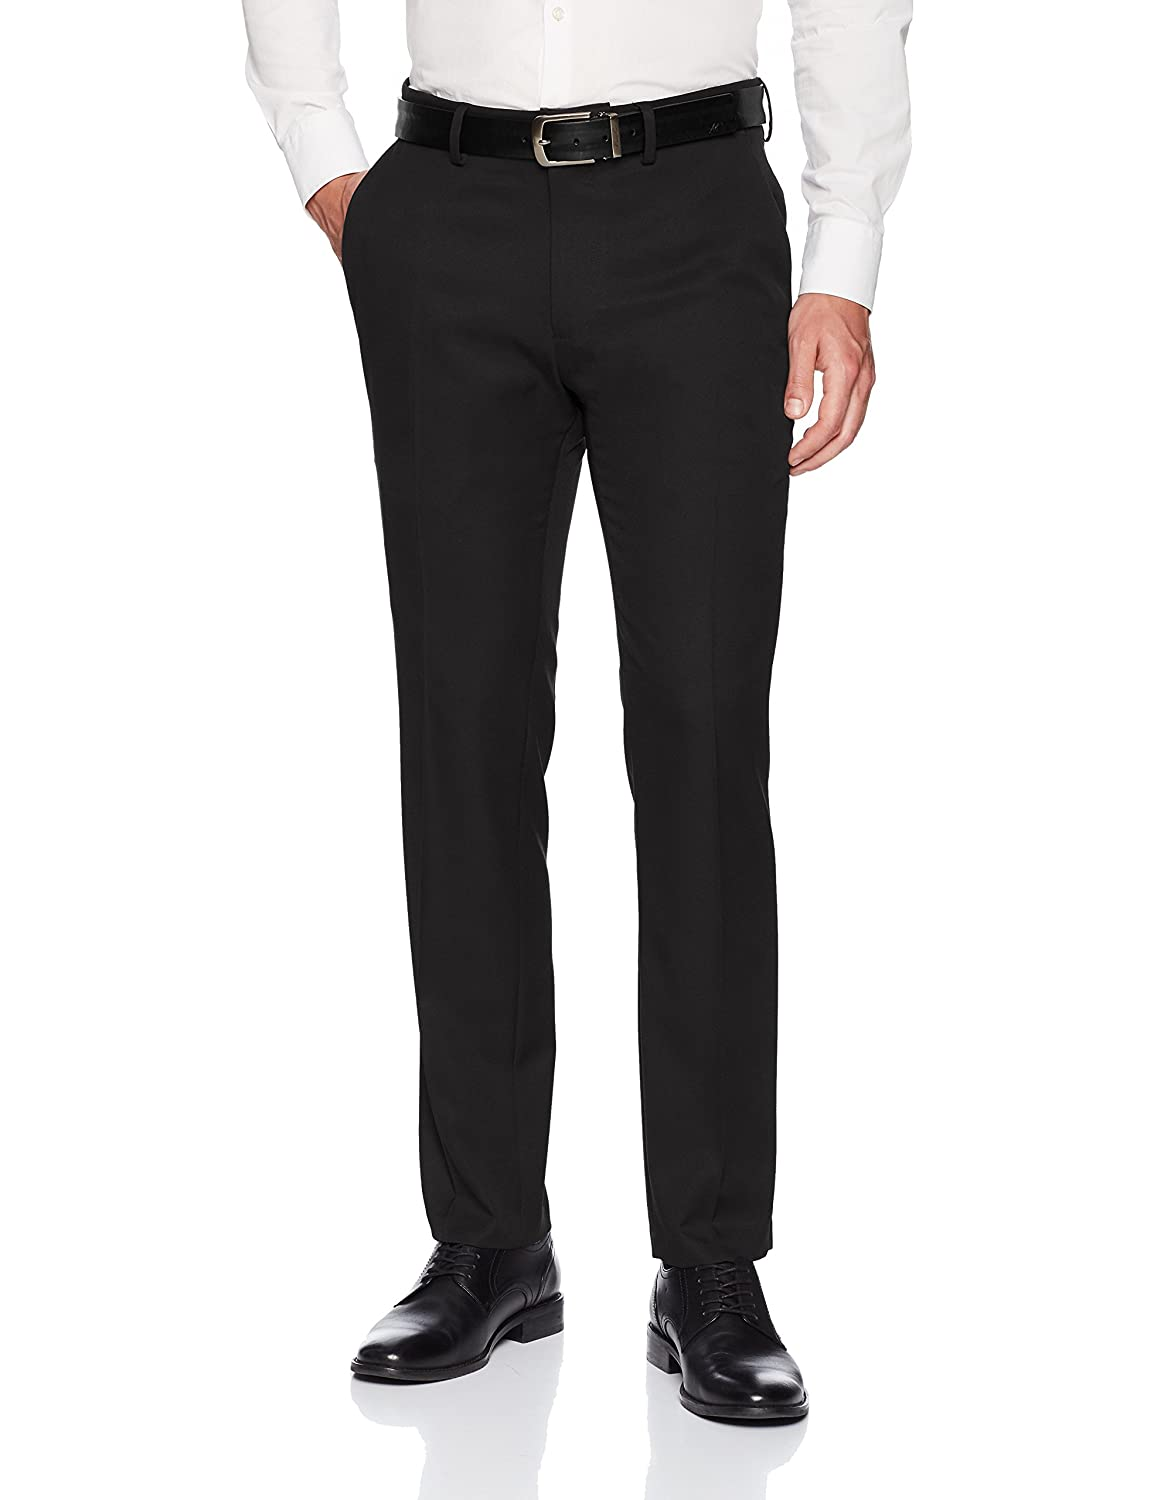 Kenneth Cole REACTION Mens 4-Way Stretch Solid Gab Slim Fit Flat Front Dress Pant KD00482